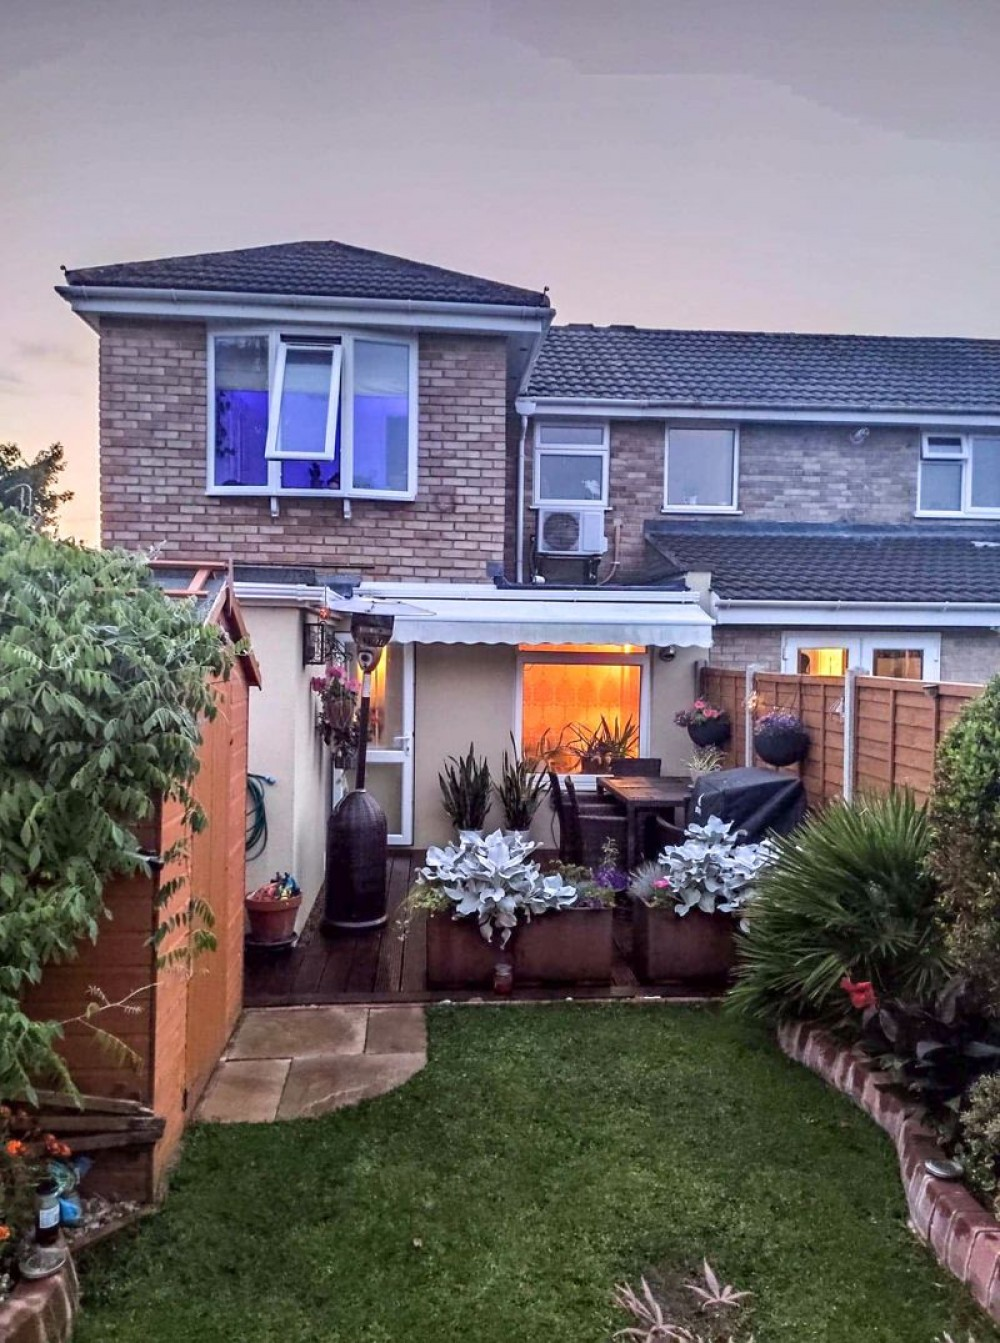 Images for Greenhill Close, Worle - SUPERB EXTENDED HOME EAID:AshleyLeahy BID:Ashley Leahy Estate Agents